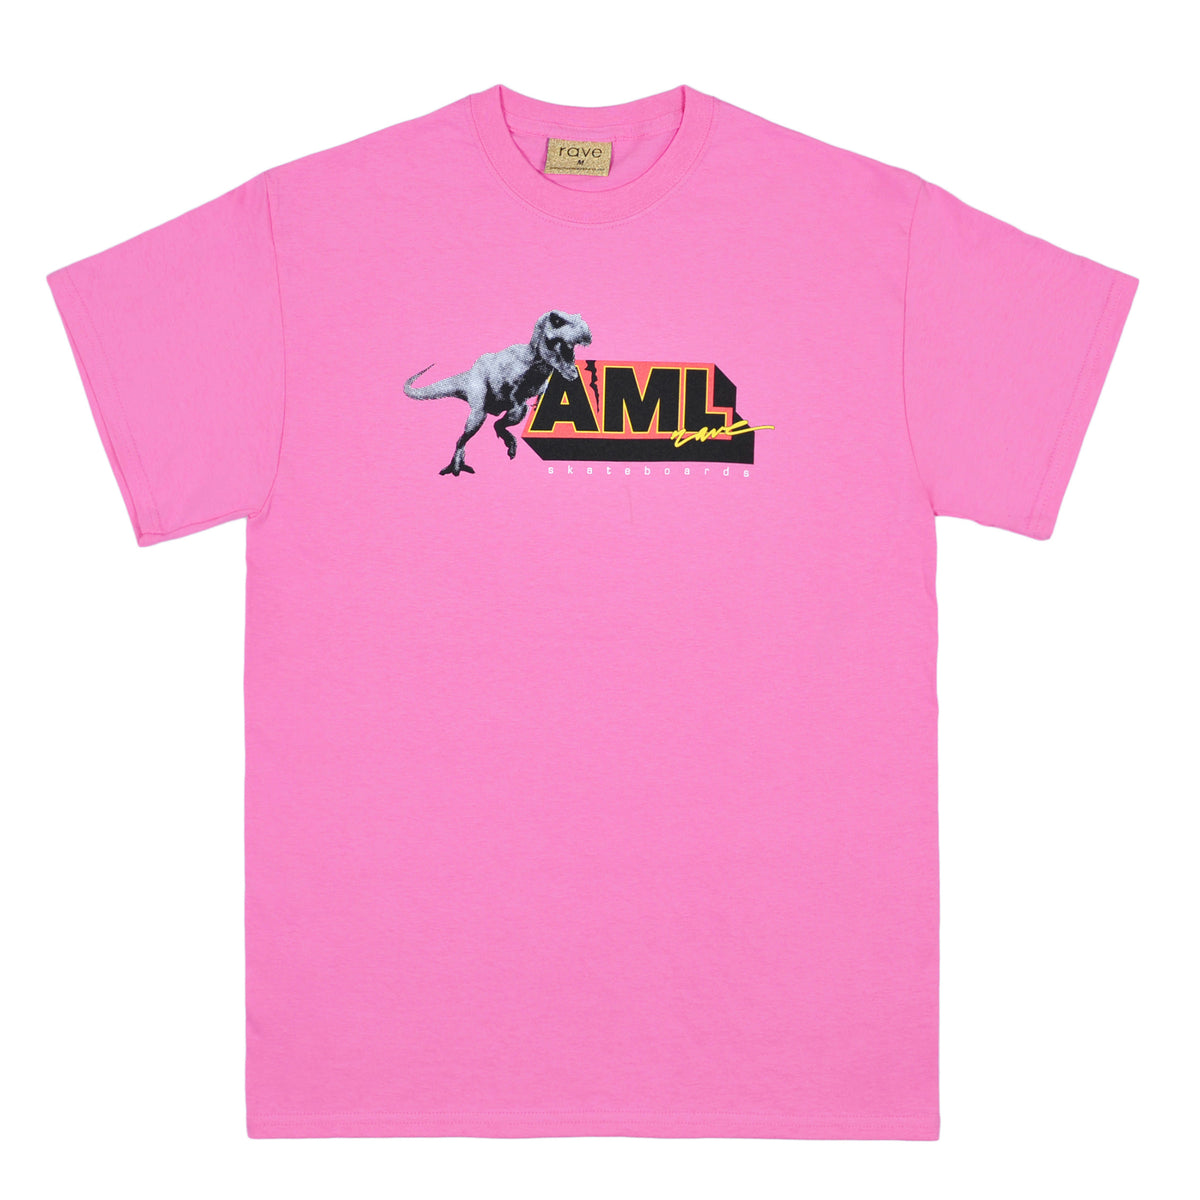 AML pink tee - RAVE skateboards